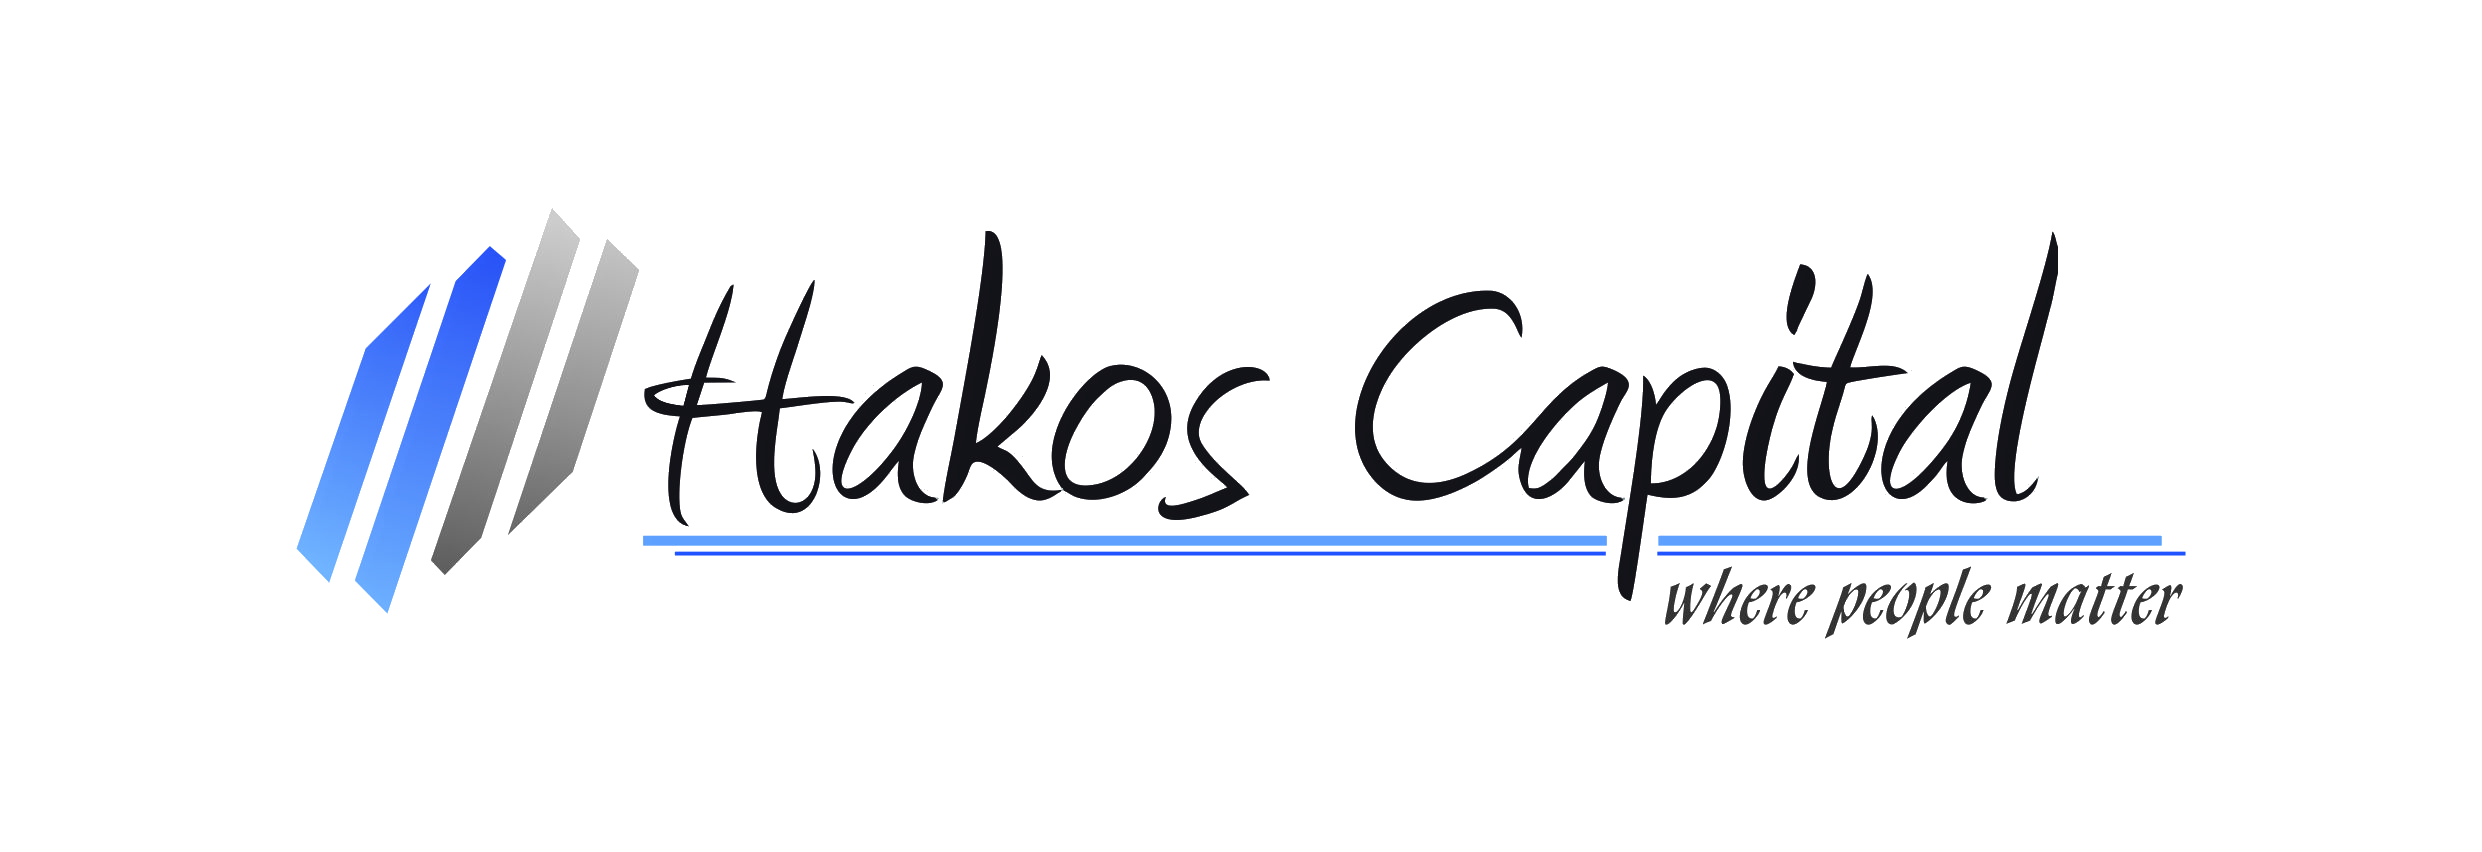 Hakos Capital